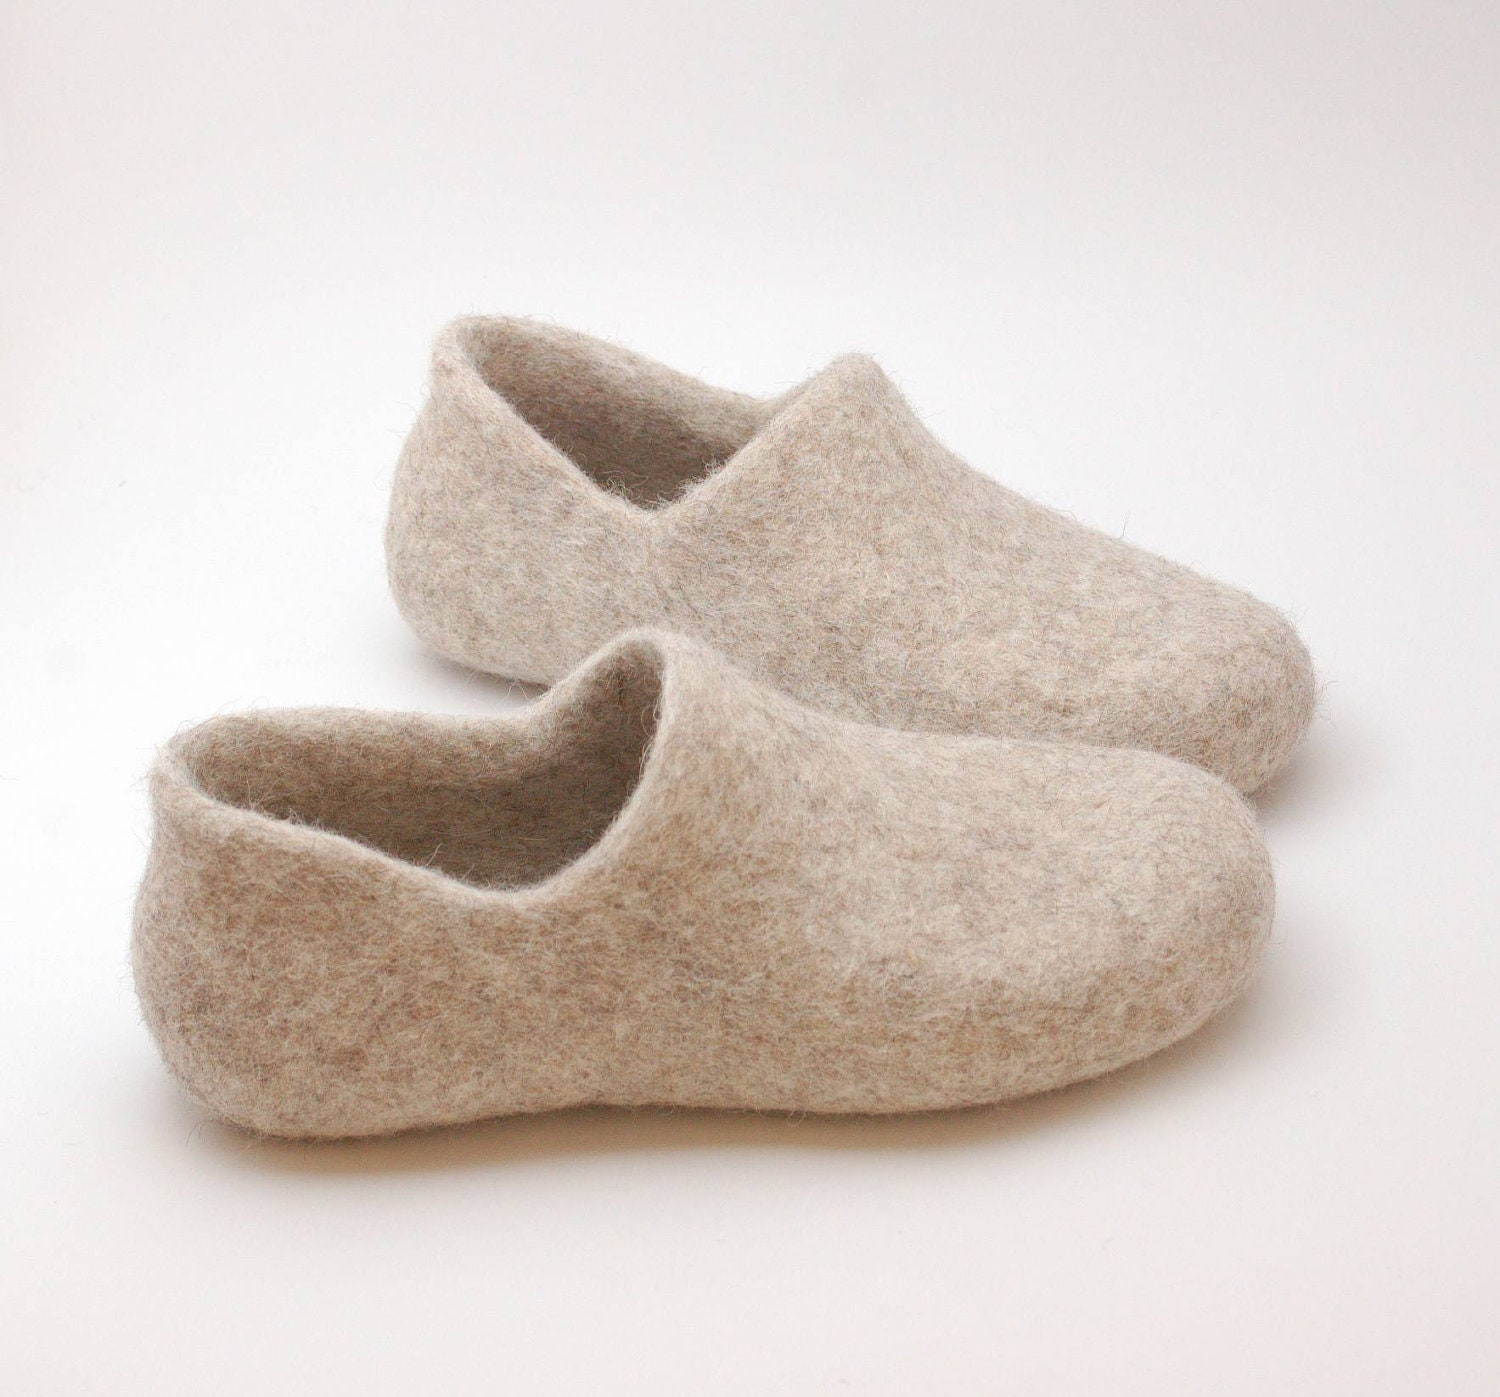 Eco Friendly Slippers: Felted Wool Clogs Just Beige